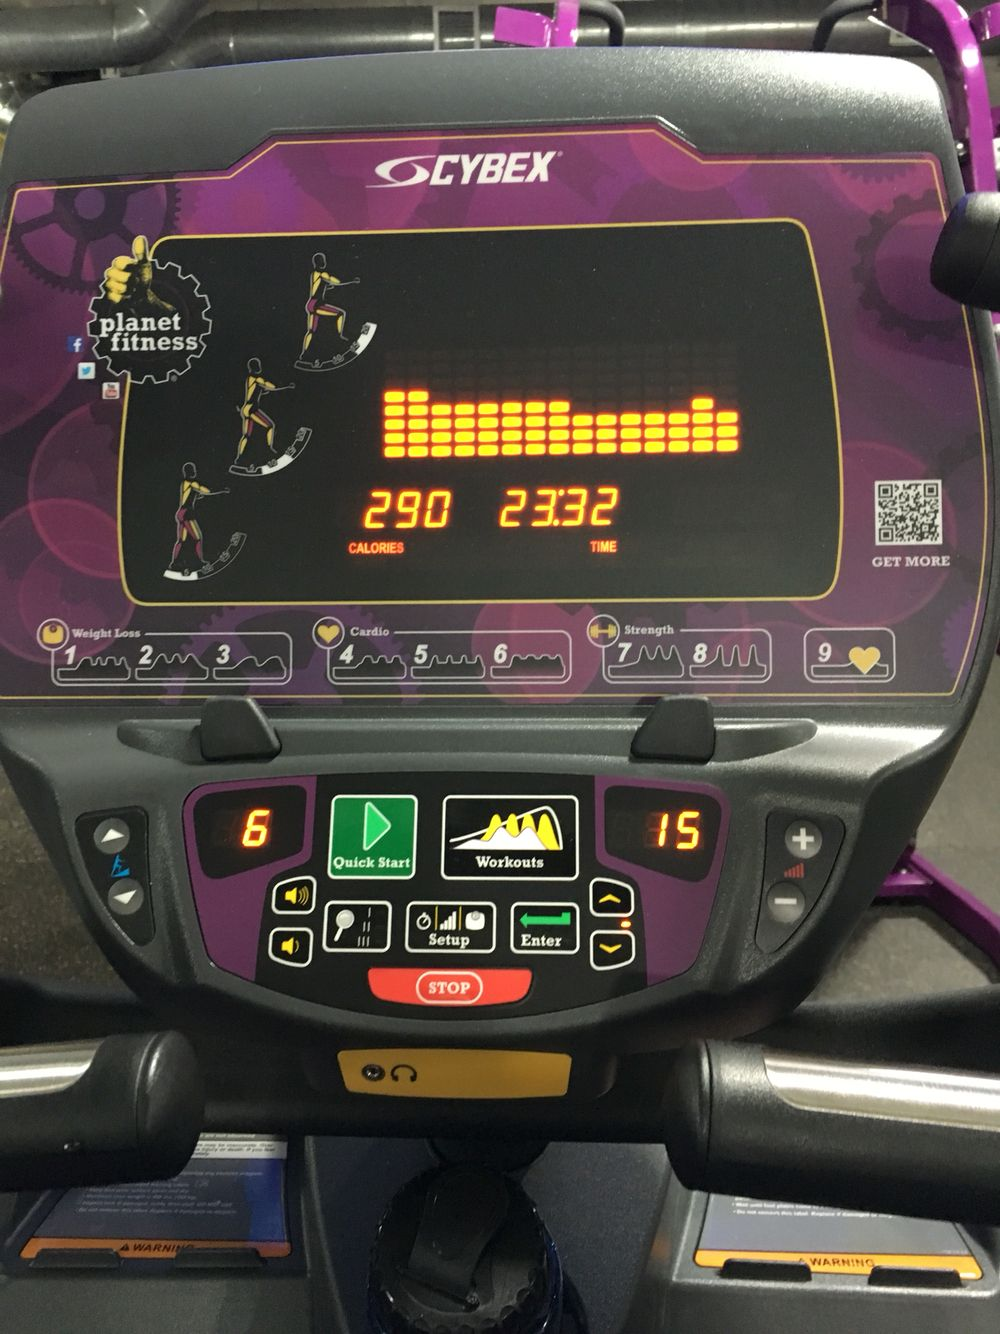 Planet Fitness Arc Trainer : planet, fitness, trainer, Trainer, Planet, Fitness, Workout,, Trainer,, Cardio